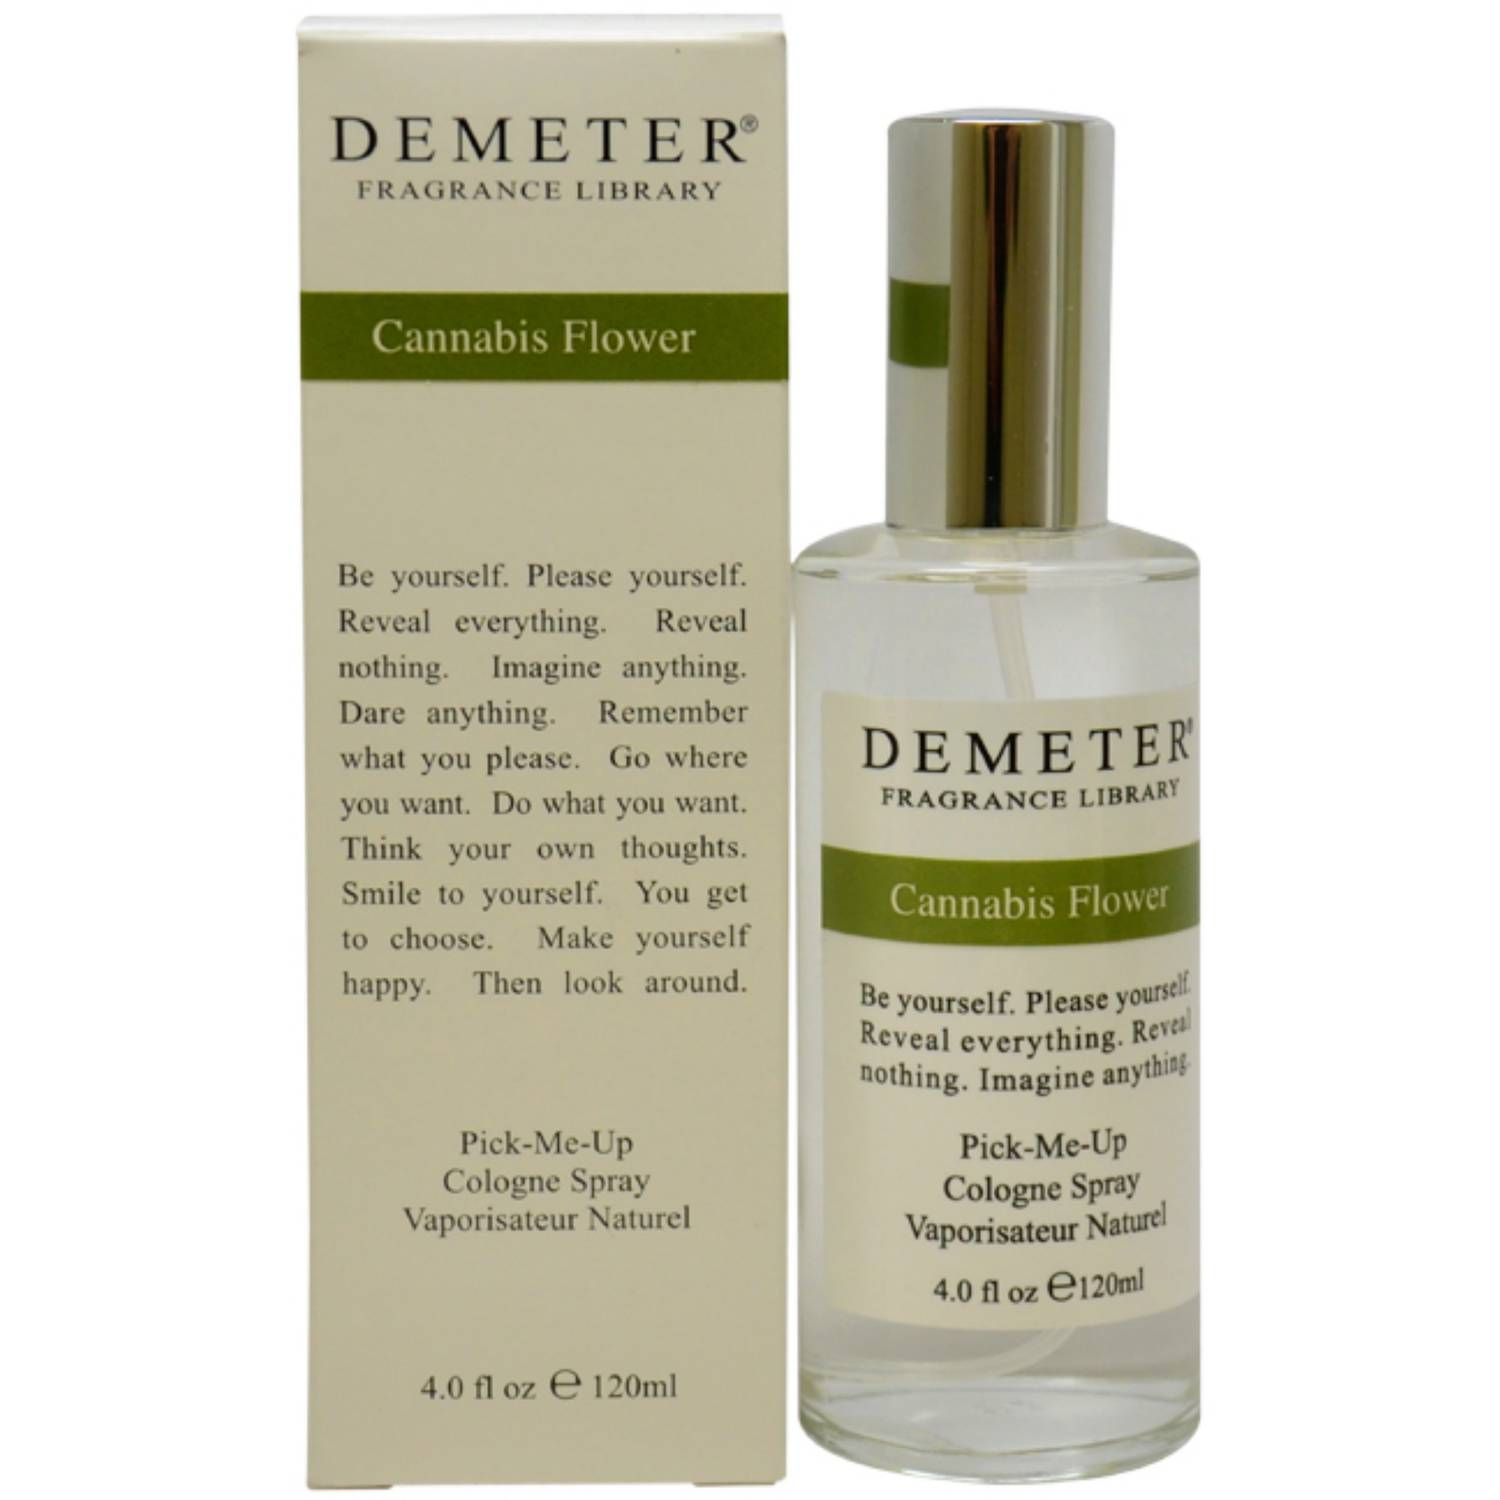 Cannabis Flower by Demeter for Women Cologne Spray, 4 oz